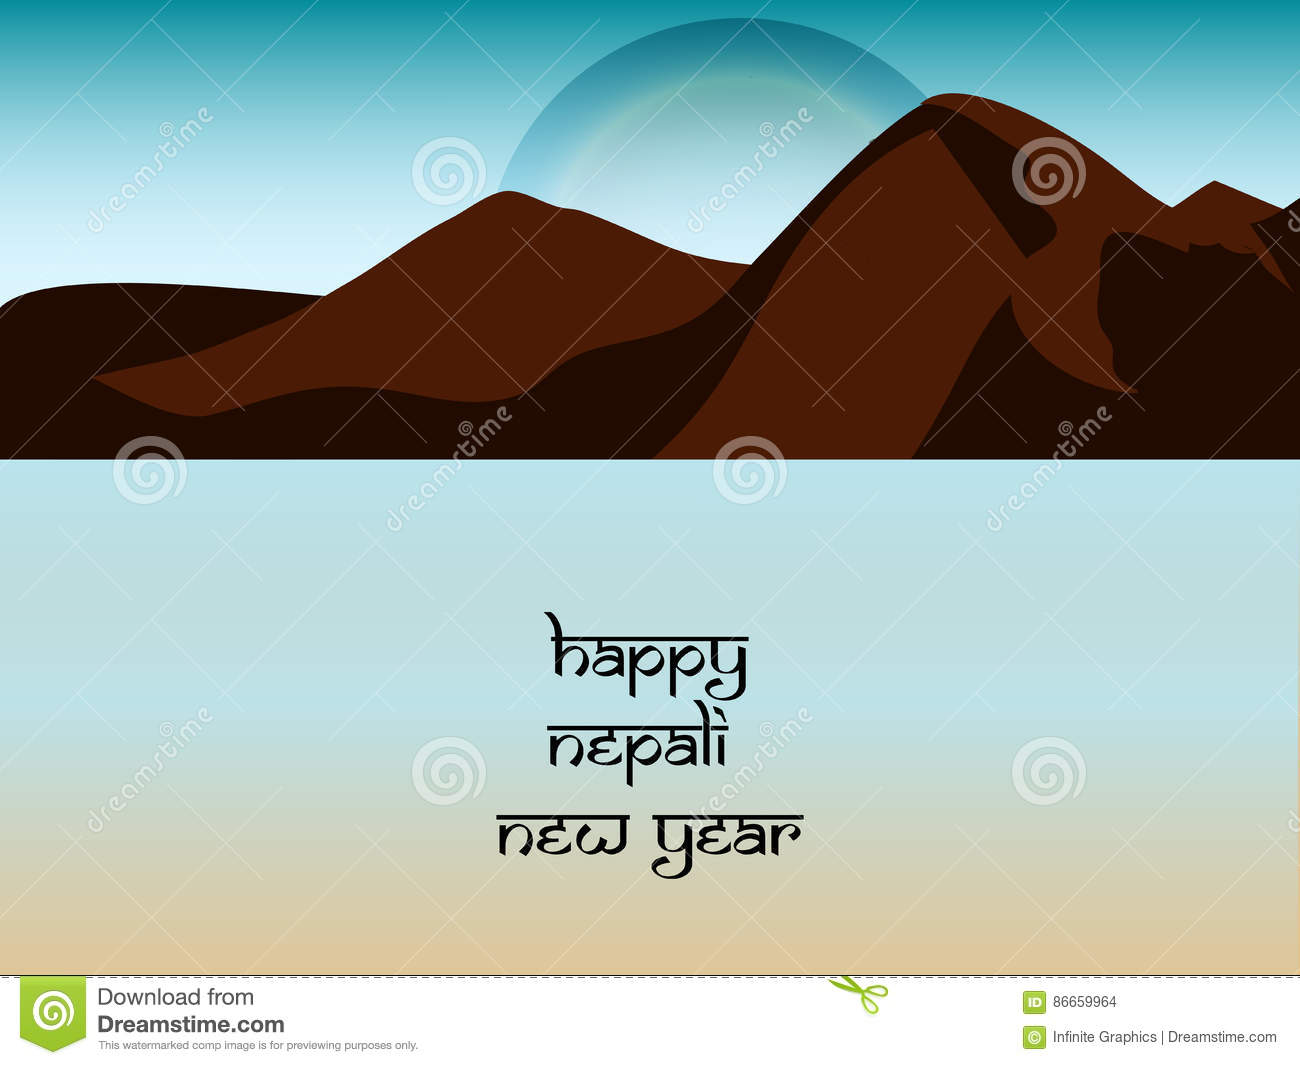 download nepal new year background stock vector illustration of country 86659964